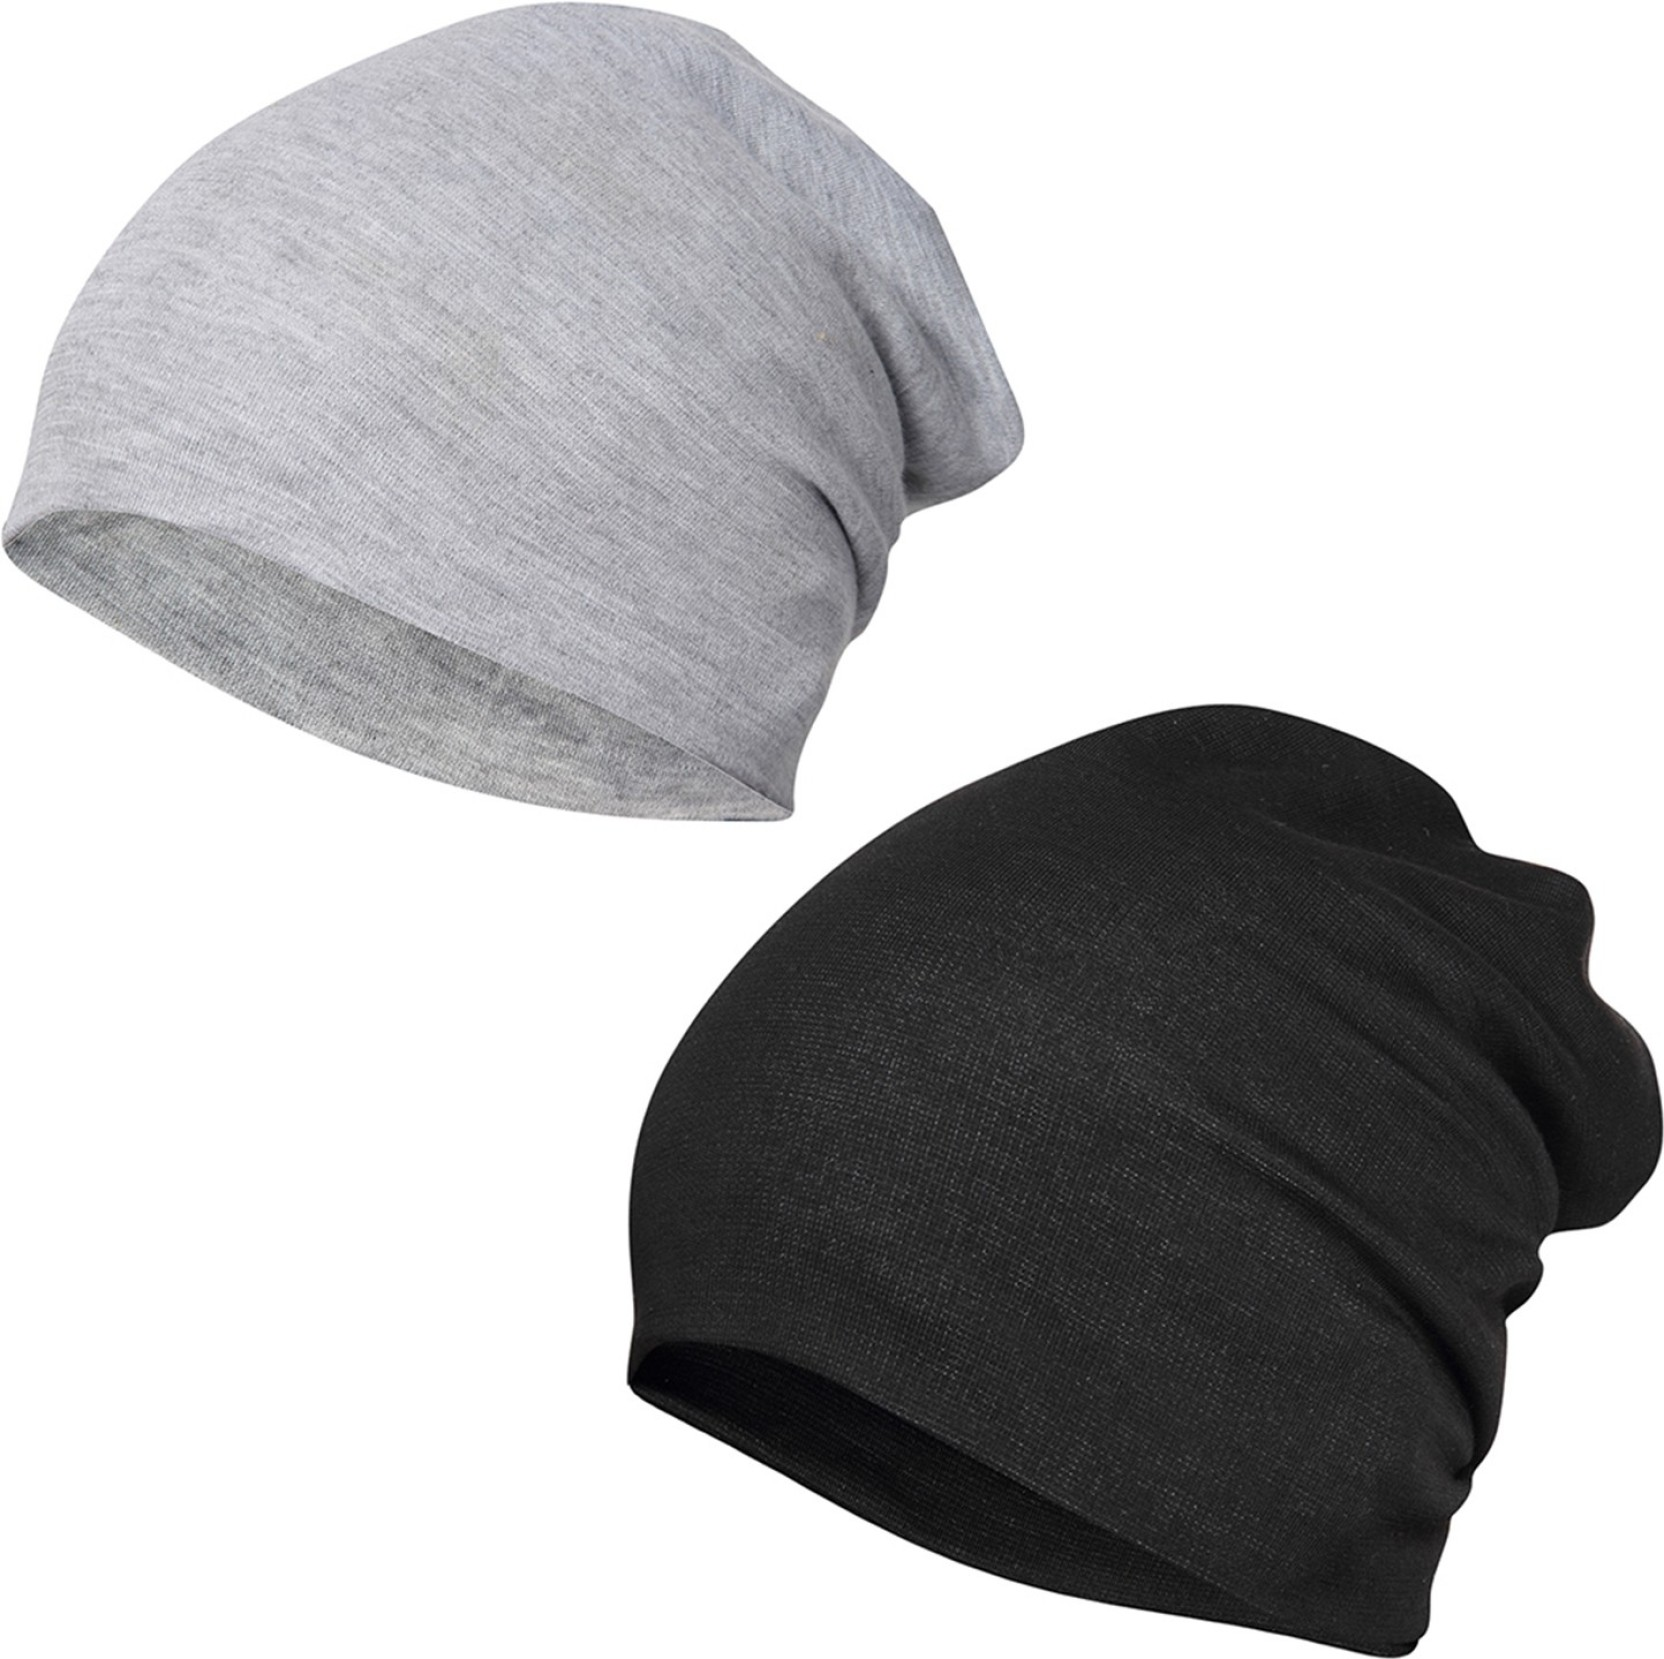 6da3a9b8ad6 FabSeasons Solid Cotton Slouchy Beanie and Skull Cap for Summer ...